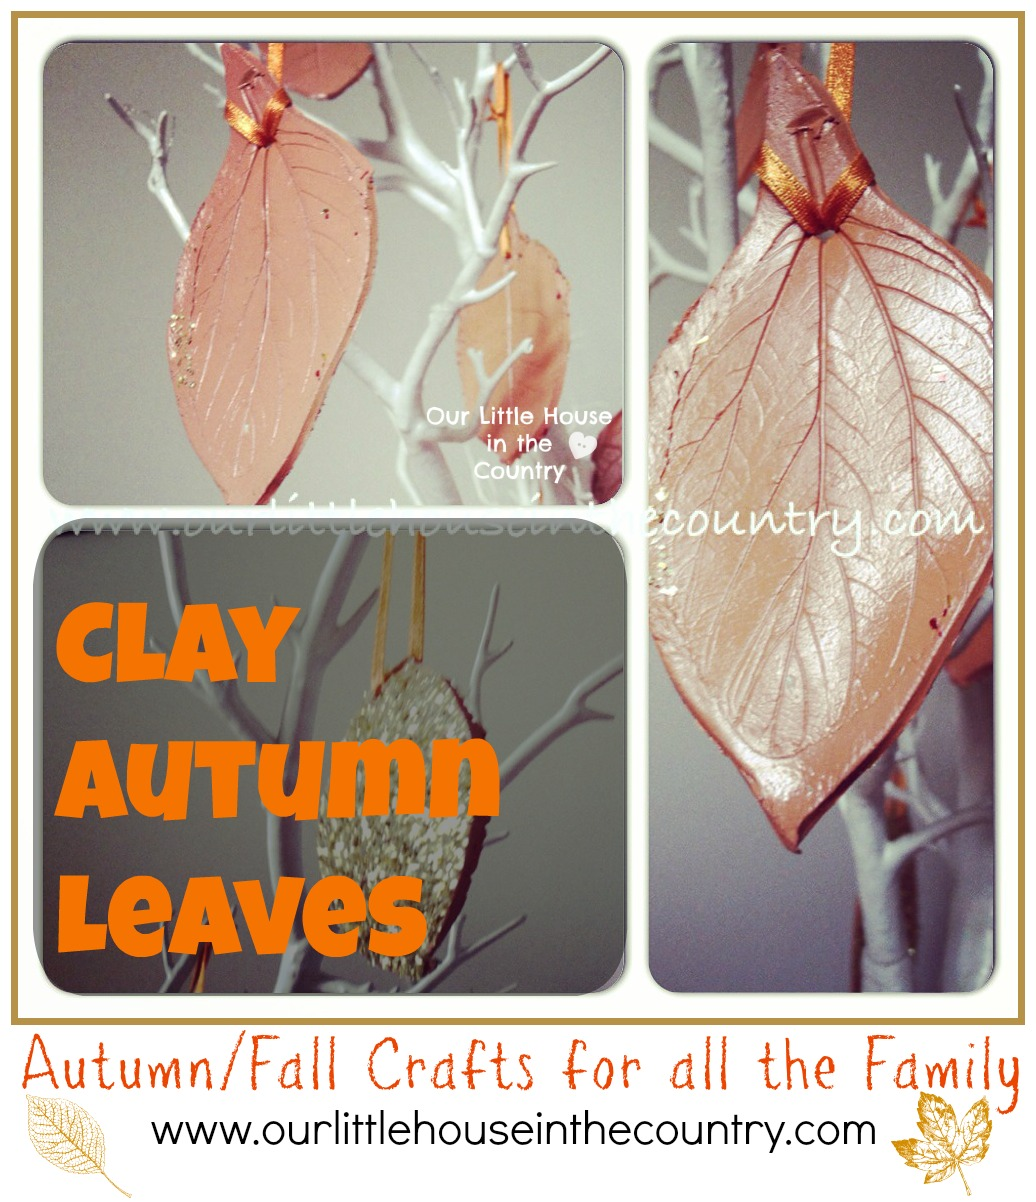 Clay Autumn Leaves Fall Crafts For Kids Our Little House In The